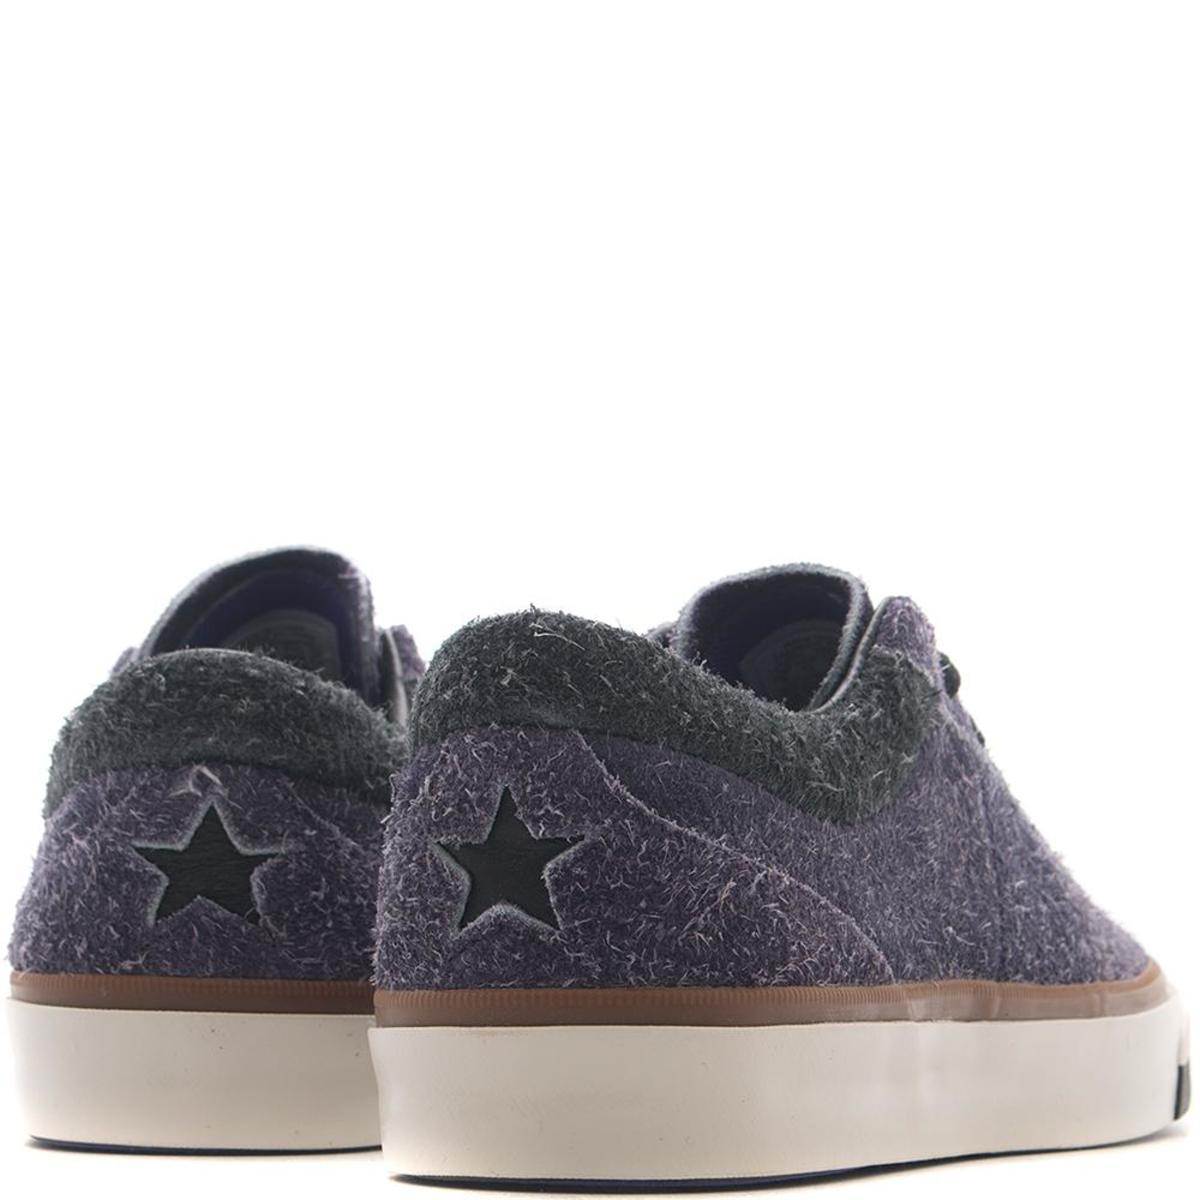 7187766bc3a647 Converse Gold Star x Clot One Star CC - Purple Velvet